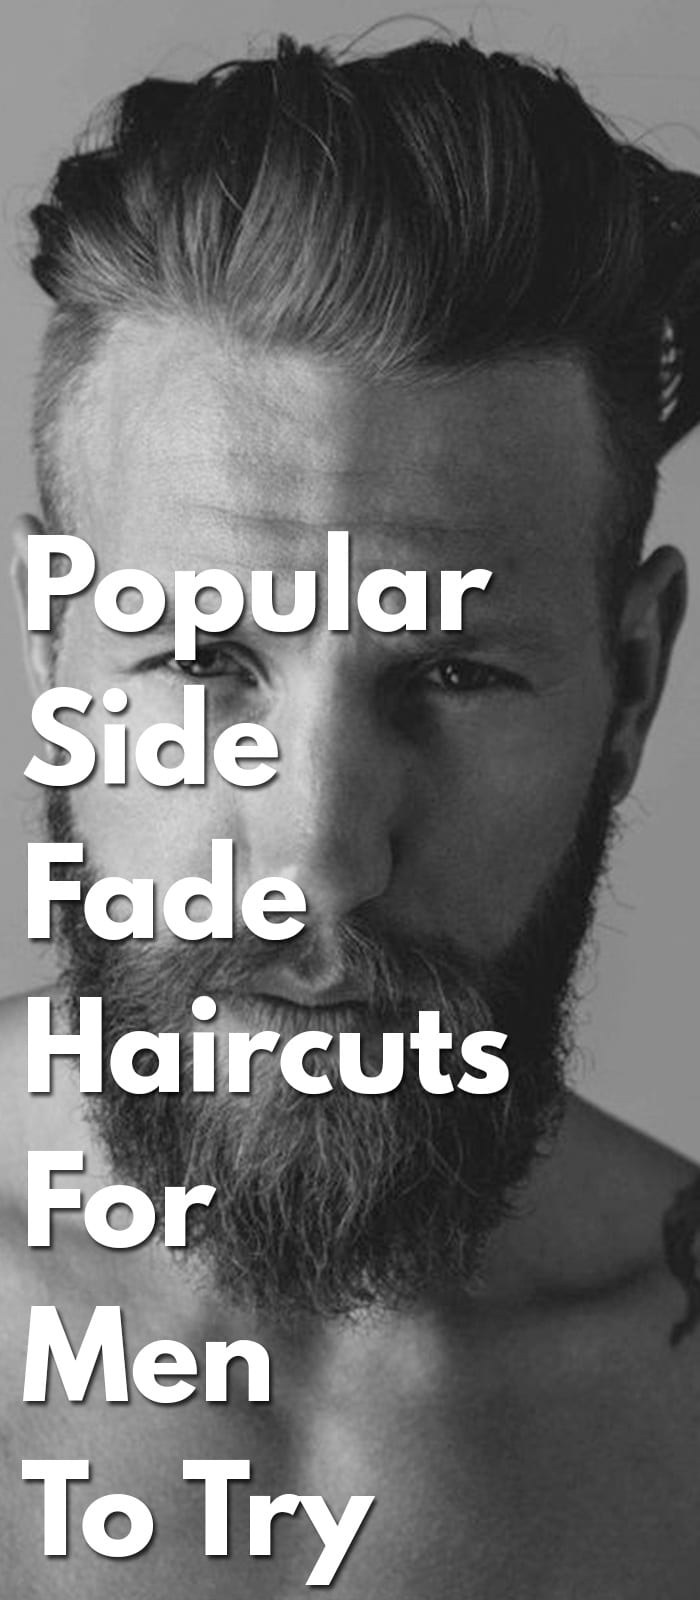 Popular-Side-Fade-Haircuts-For-Men-To-Try..